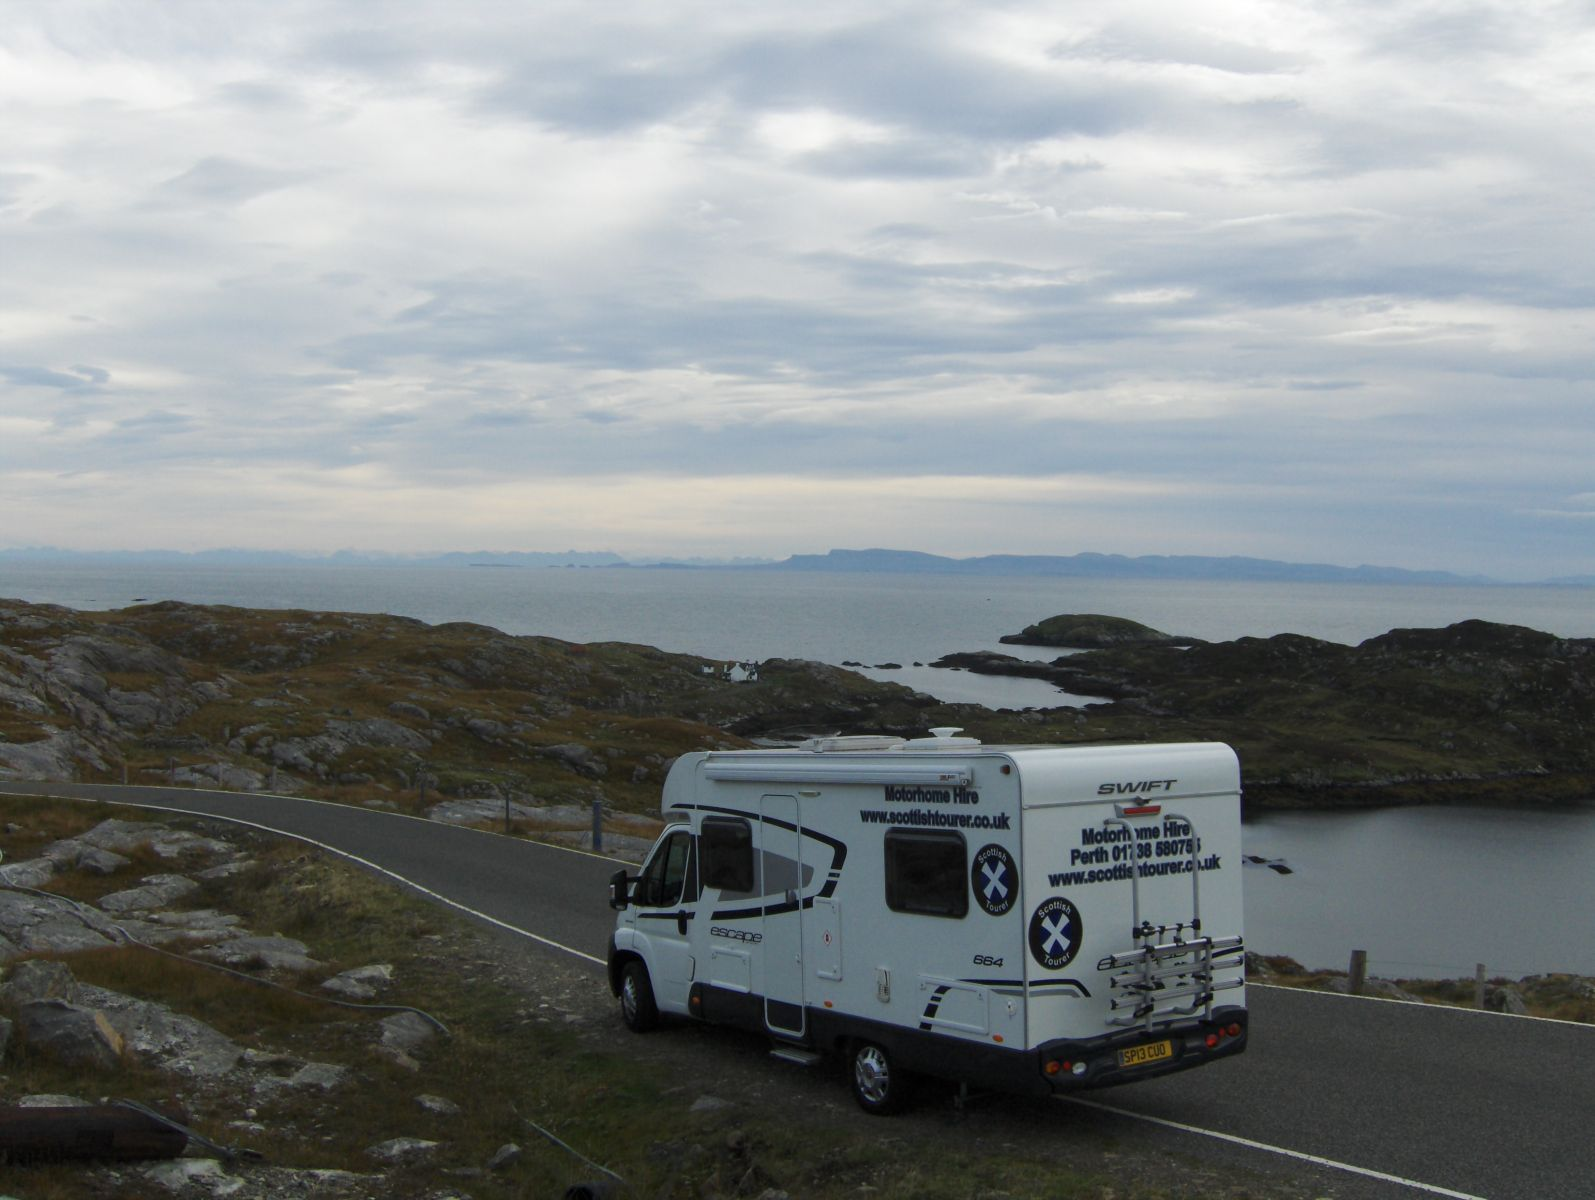 Enjoying the view from the motorhome